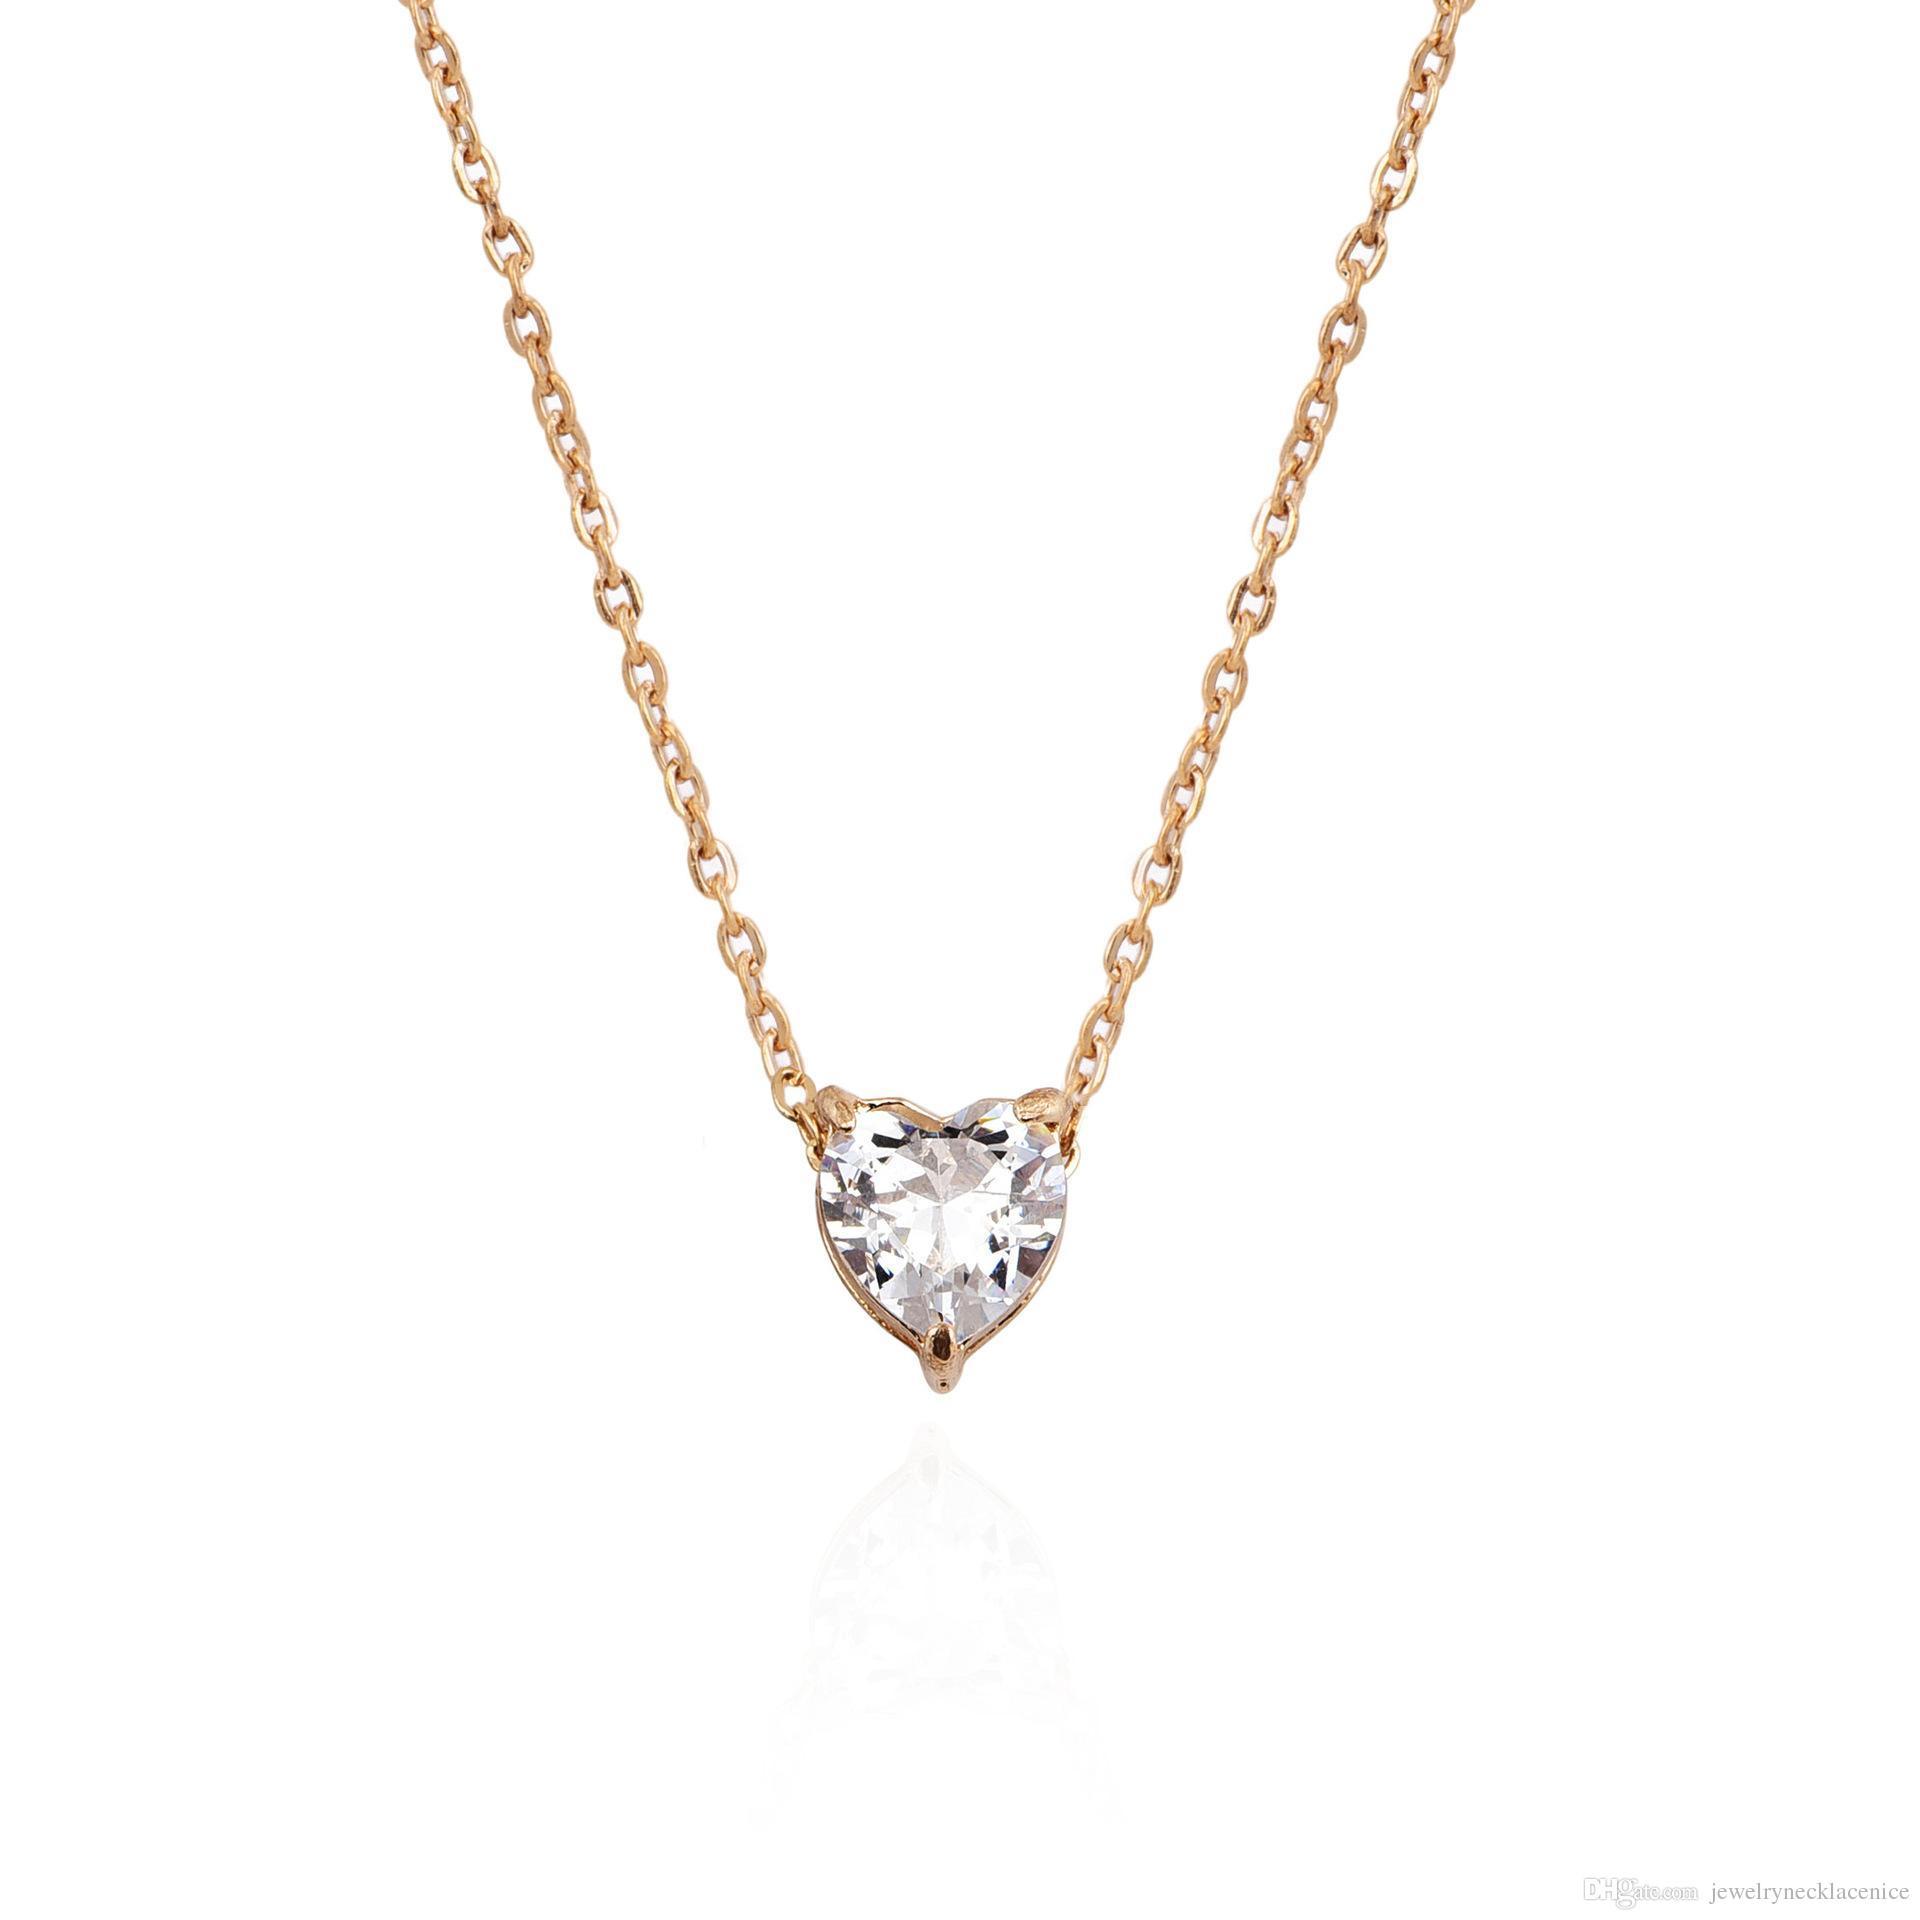 Newcrystal Heart Pendant Necklace Women Female Short Gold Chain Necklace Pendant Necklace Crystal Heart Chocker Jewelry Gift Cheap Wholesale Pertaining To Newest Ice Crystal Heart Collier Necklaces (View 4 of 25)